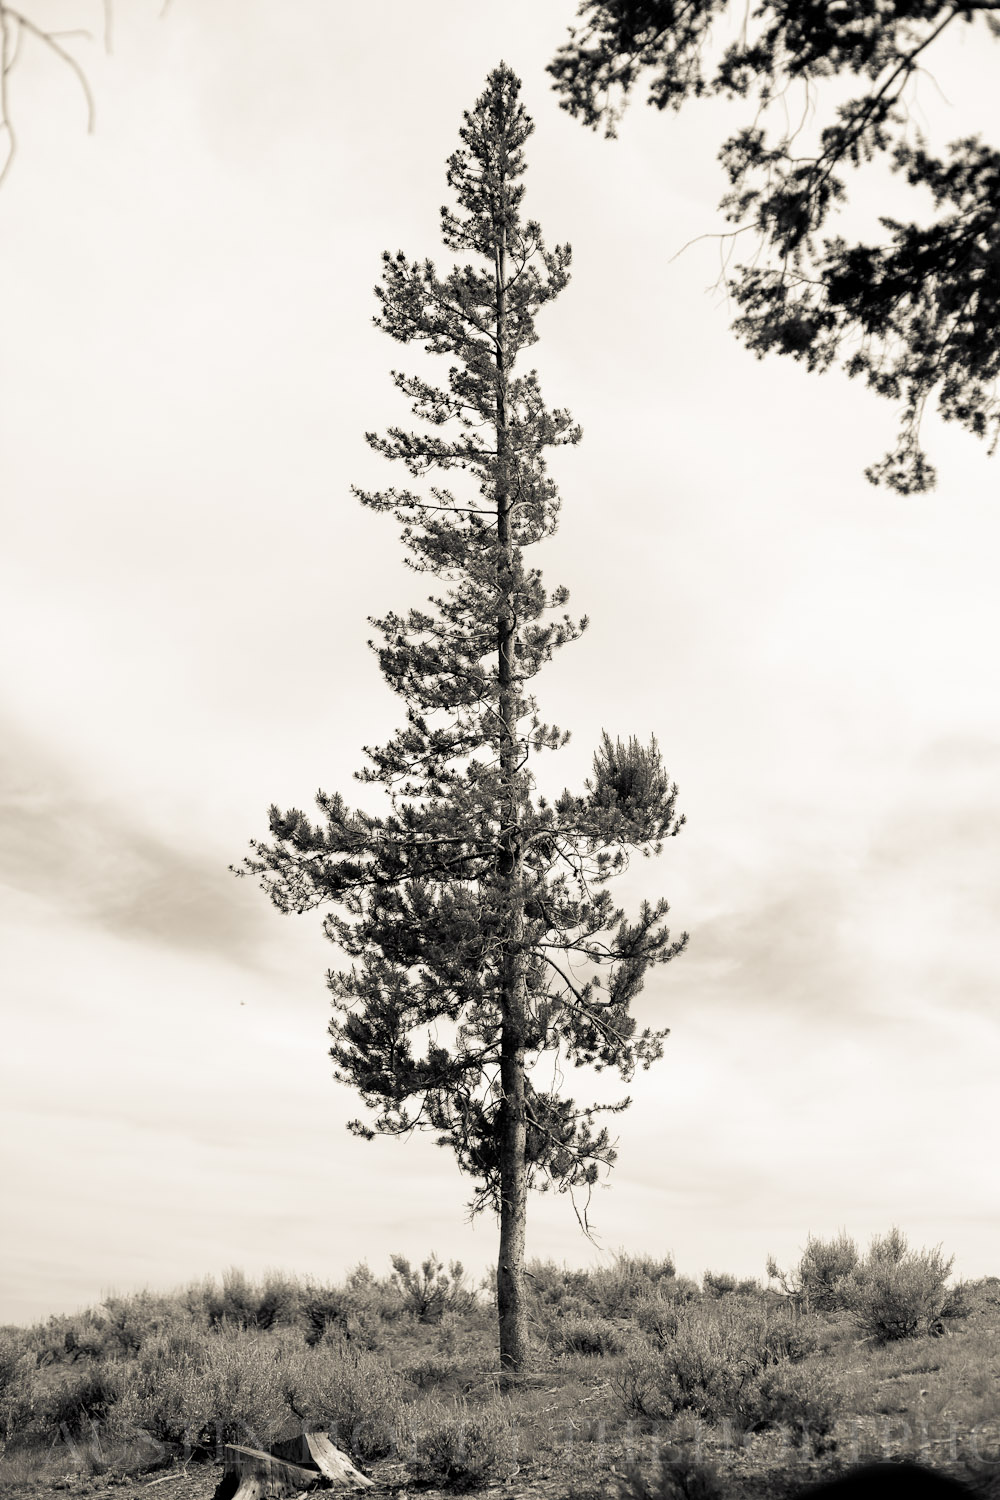 A single, lonely tree stands tall at a backcountry campsite in Stanley, Idaho.